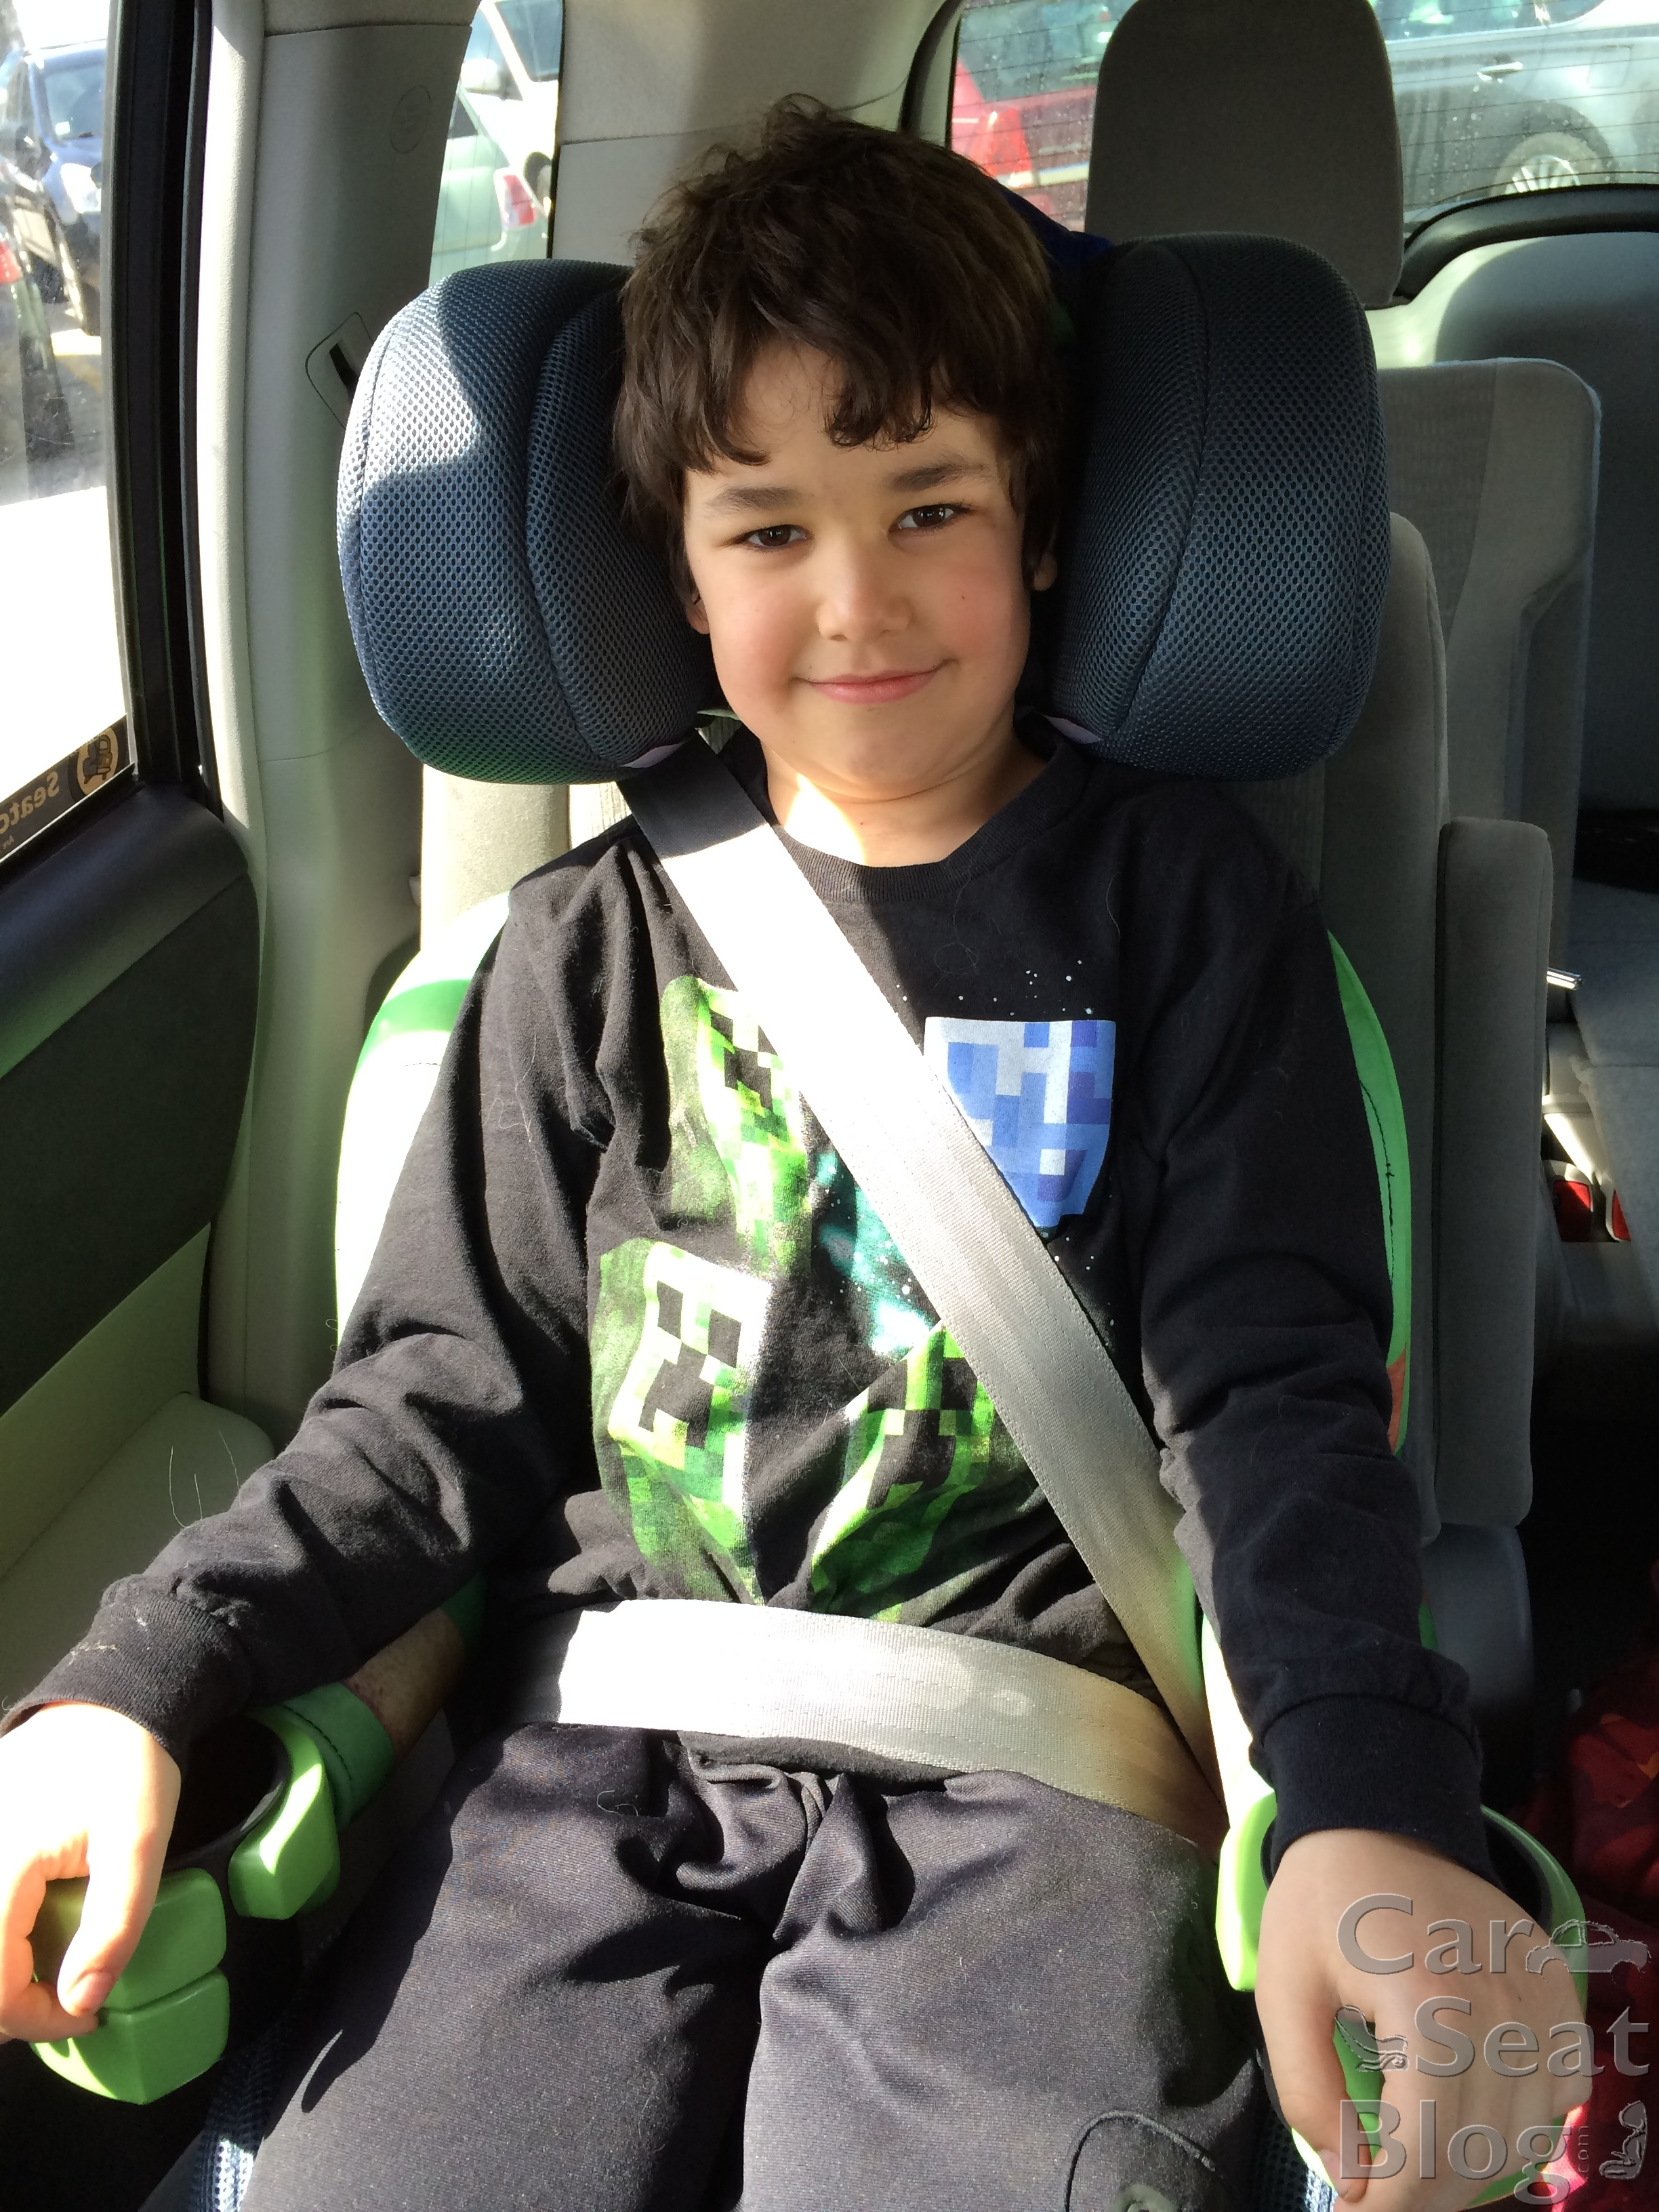 Rear Facing Car Seat Law Nj Carseatblog The Most Trusted Source For Car Seat Reviews